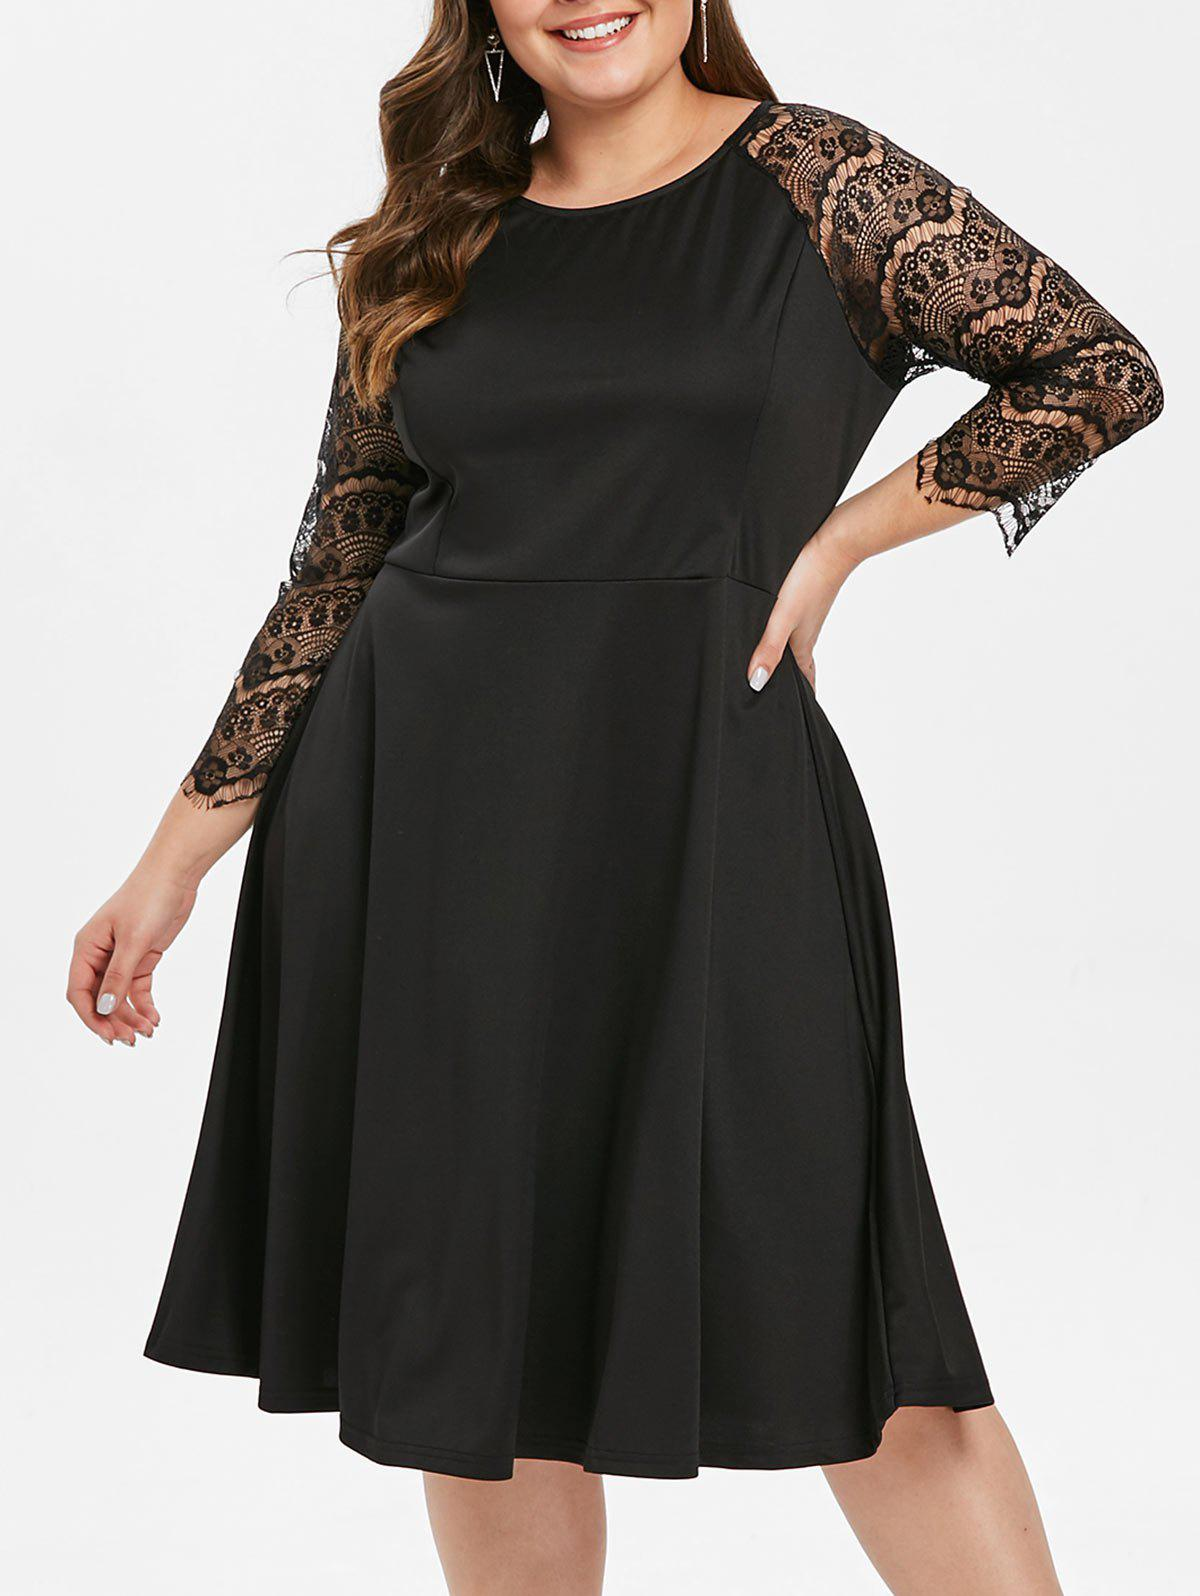 Chic Lace Panel Raglan Sleeve Plus Size Dress